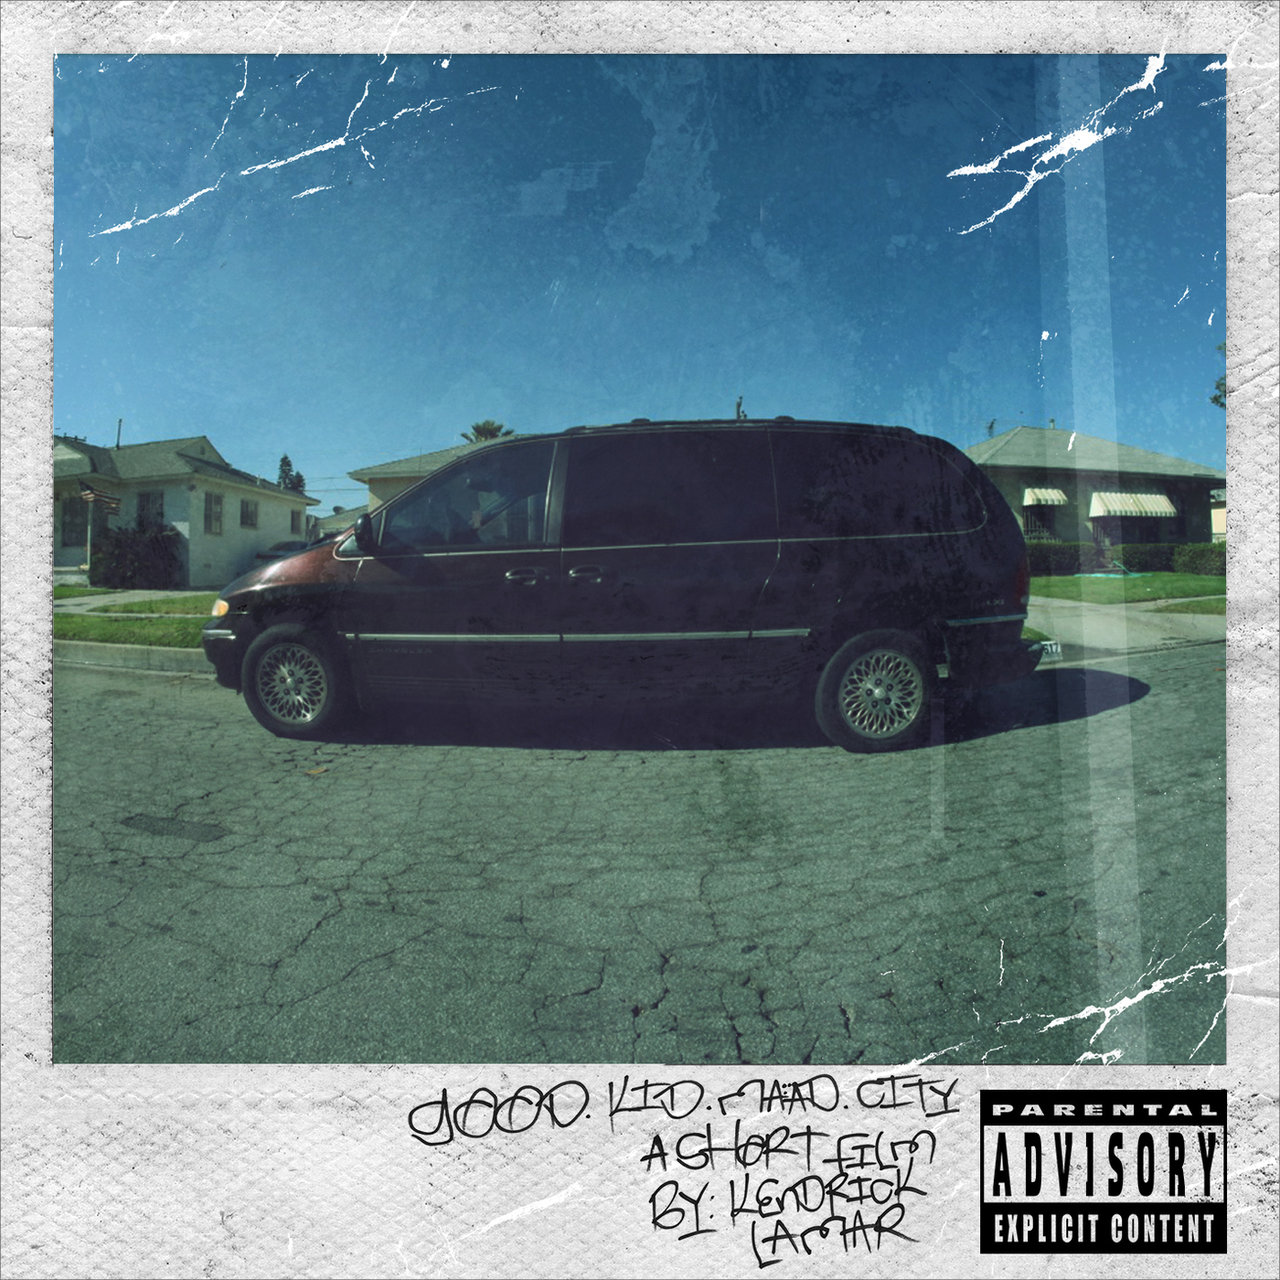 good kid, m.A.A.d city (Deluxe Explicit Version)